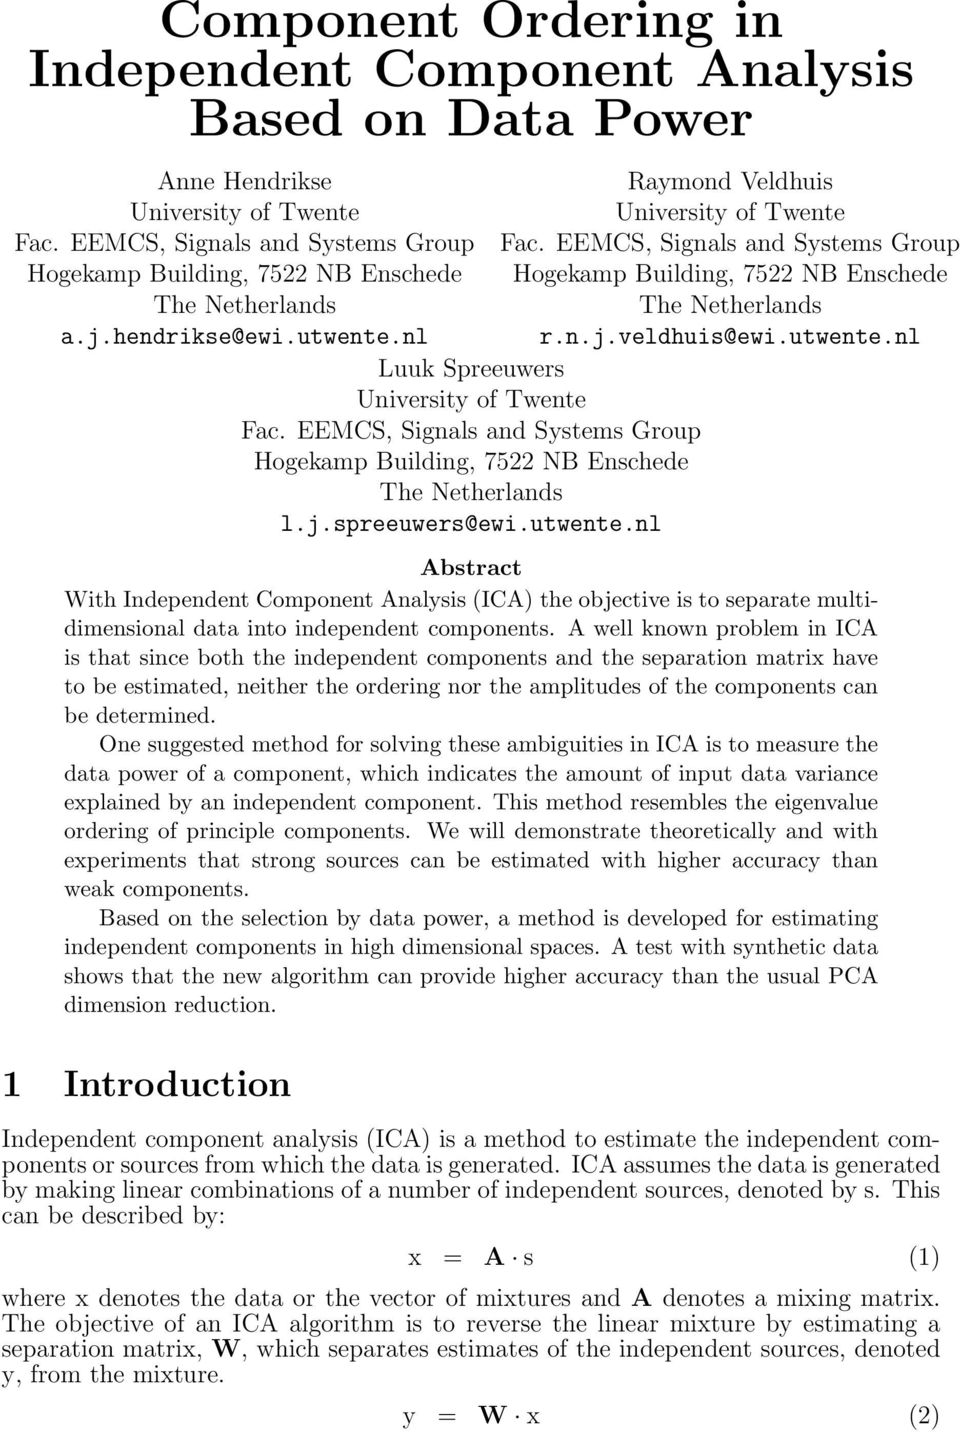 nl r.n.j.veldhuis@ewi.utwente.nl Luuk Spreeuwers University of Twente Fac. EEMCS, Signals and Systems Group Hogekamp Building, 7522 NB Enschede The Netherlands l.j.spreeuwers@ewi.utwente.nl Abstract With Independent Component Analysis (ICA) the objective is to separate multidimensional data into independent components.